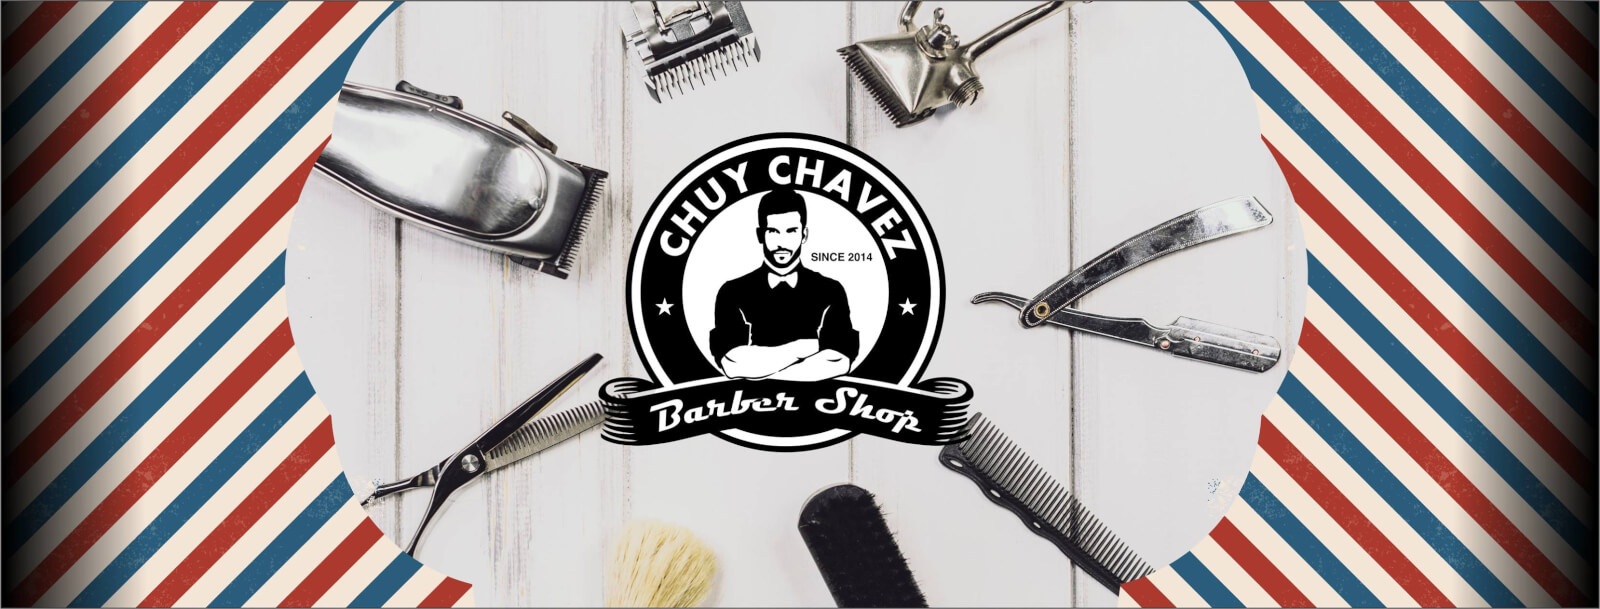 Chuy Chávez Barber Shop